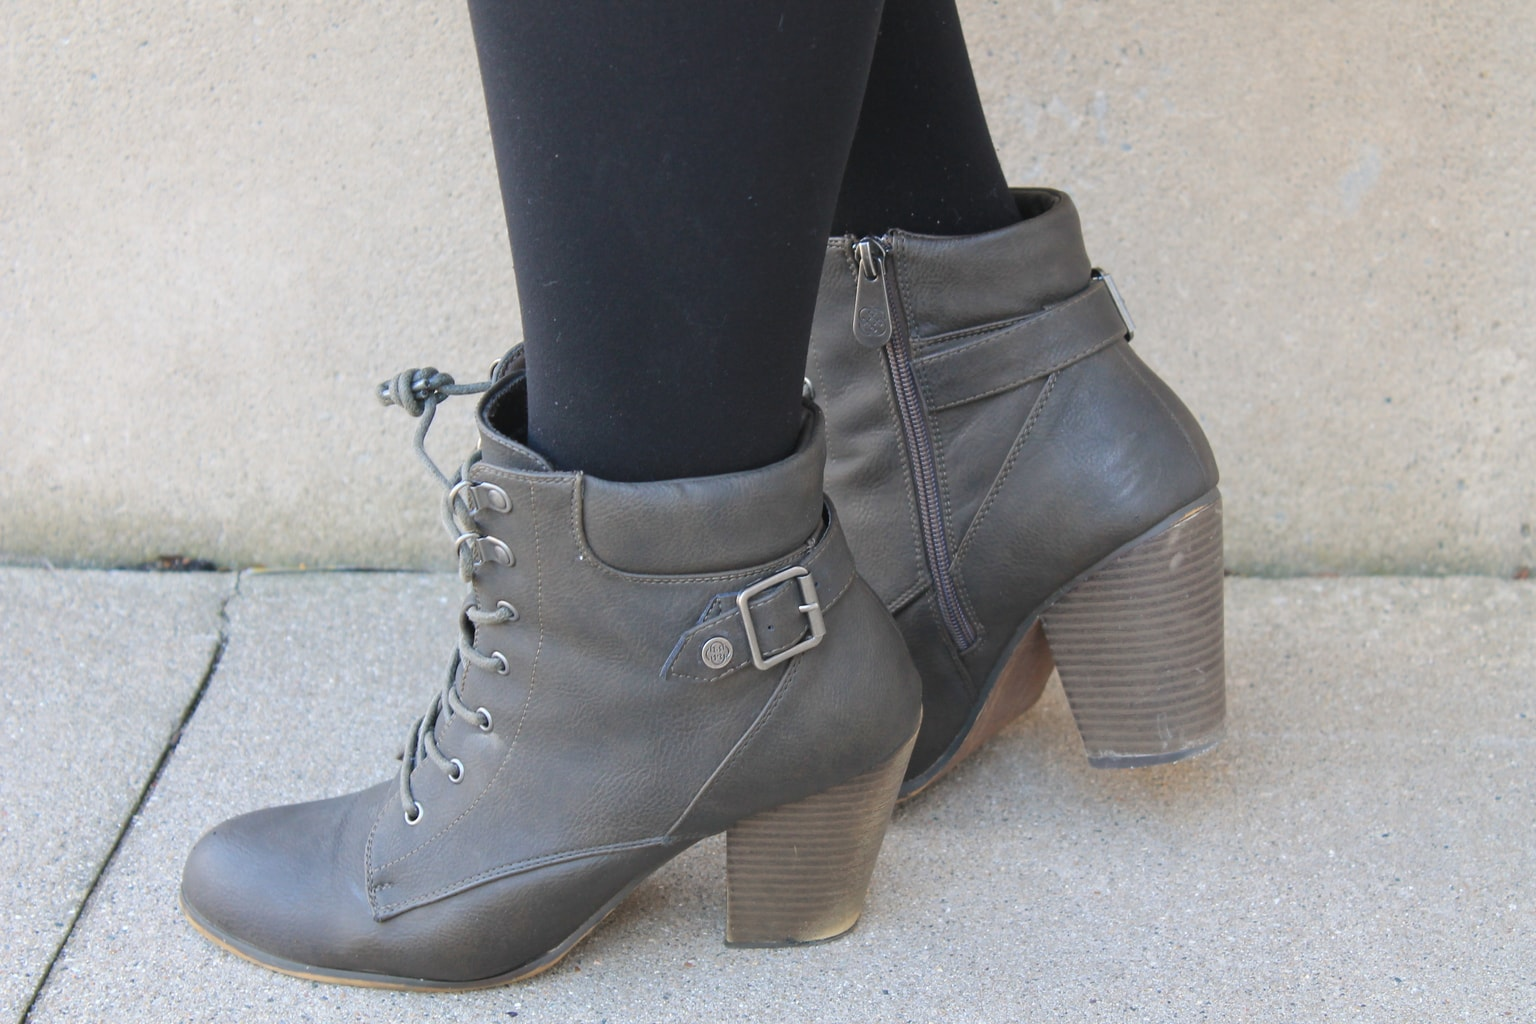 Katie sports grey chunky-heeled lace up booties with straps and buckles.